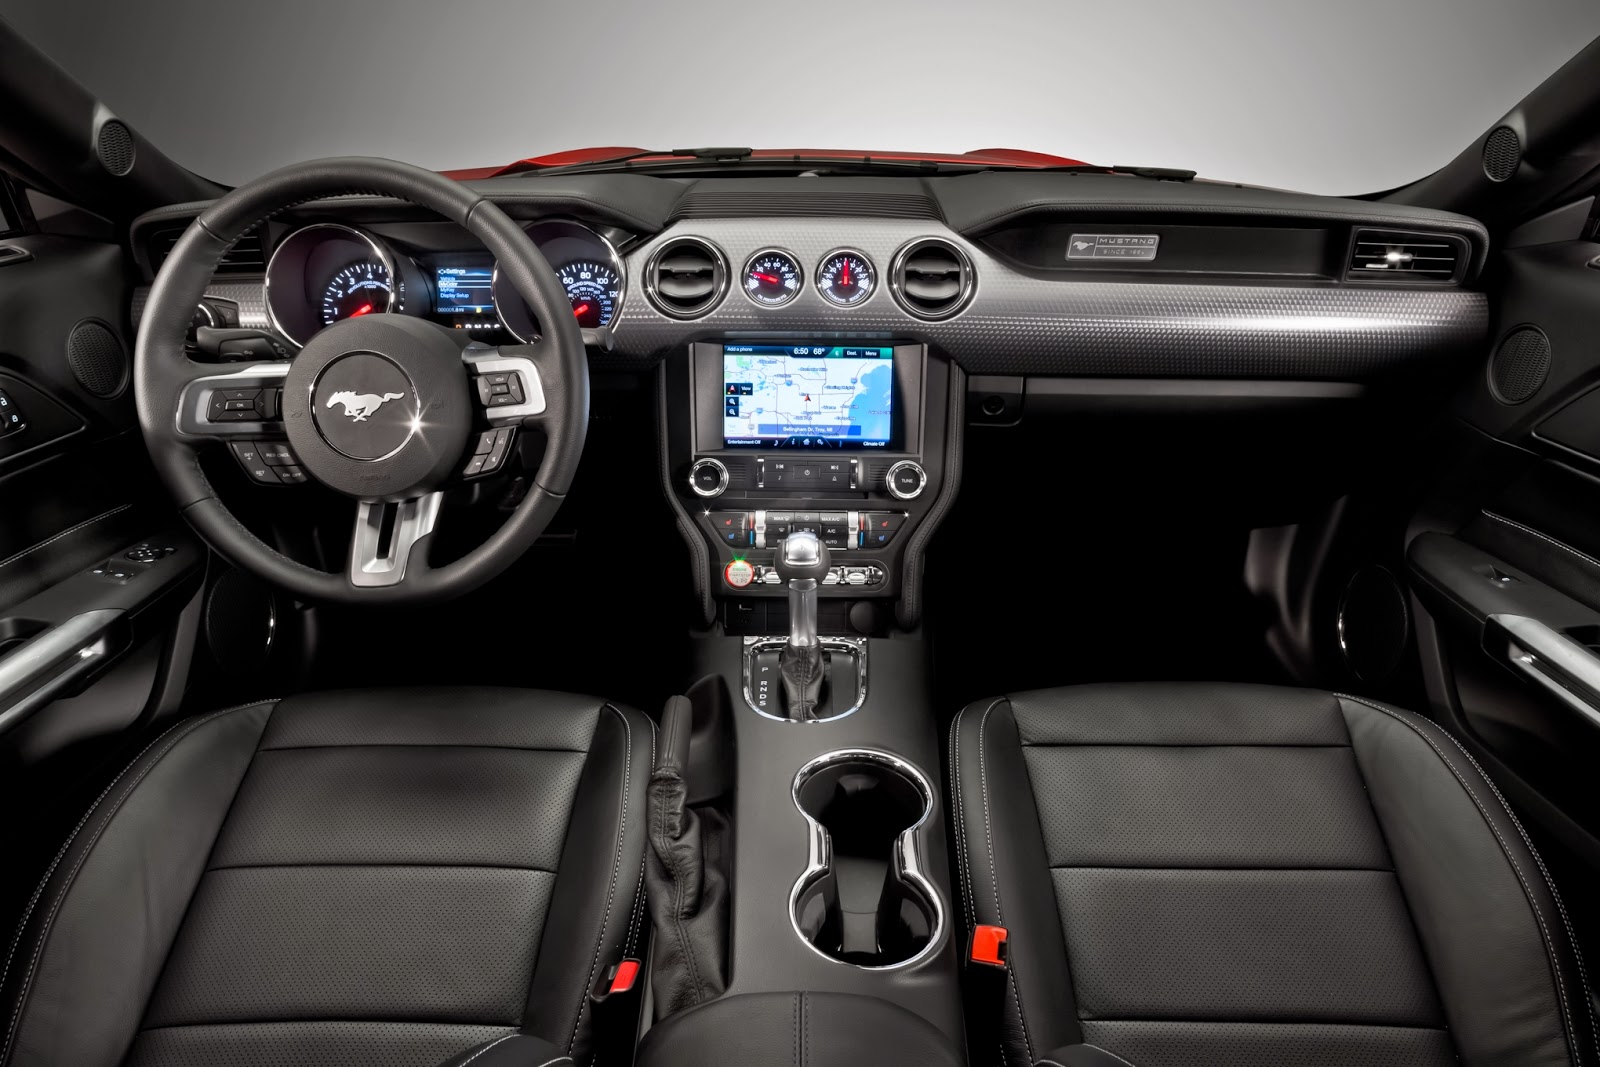 Ford 2000 ford mustang gt transmission : 2015 Ford Mustang Interior | Car Wallpaper